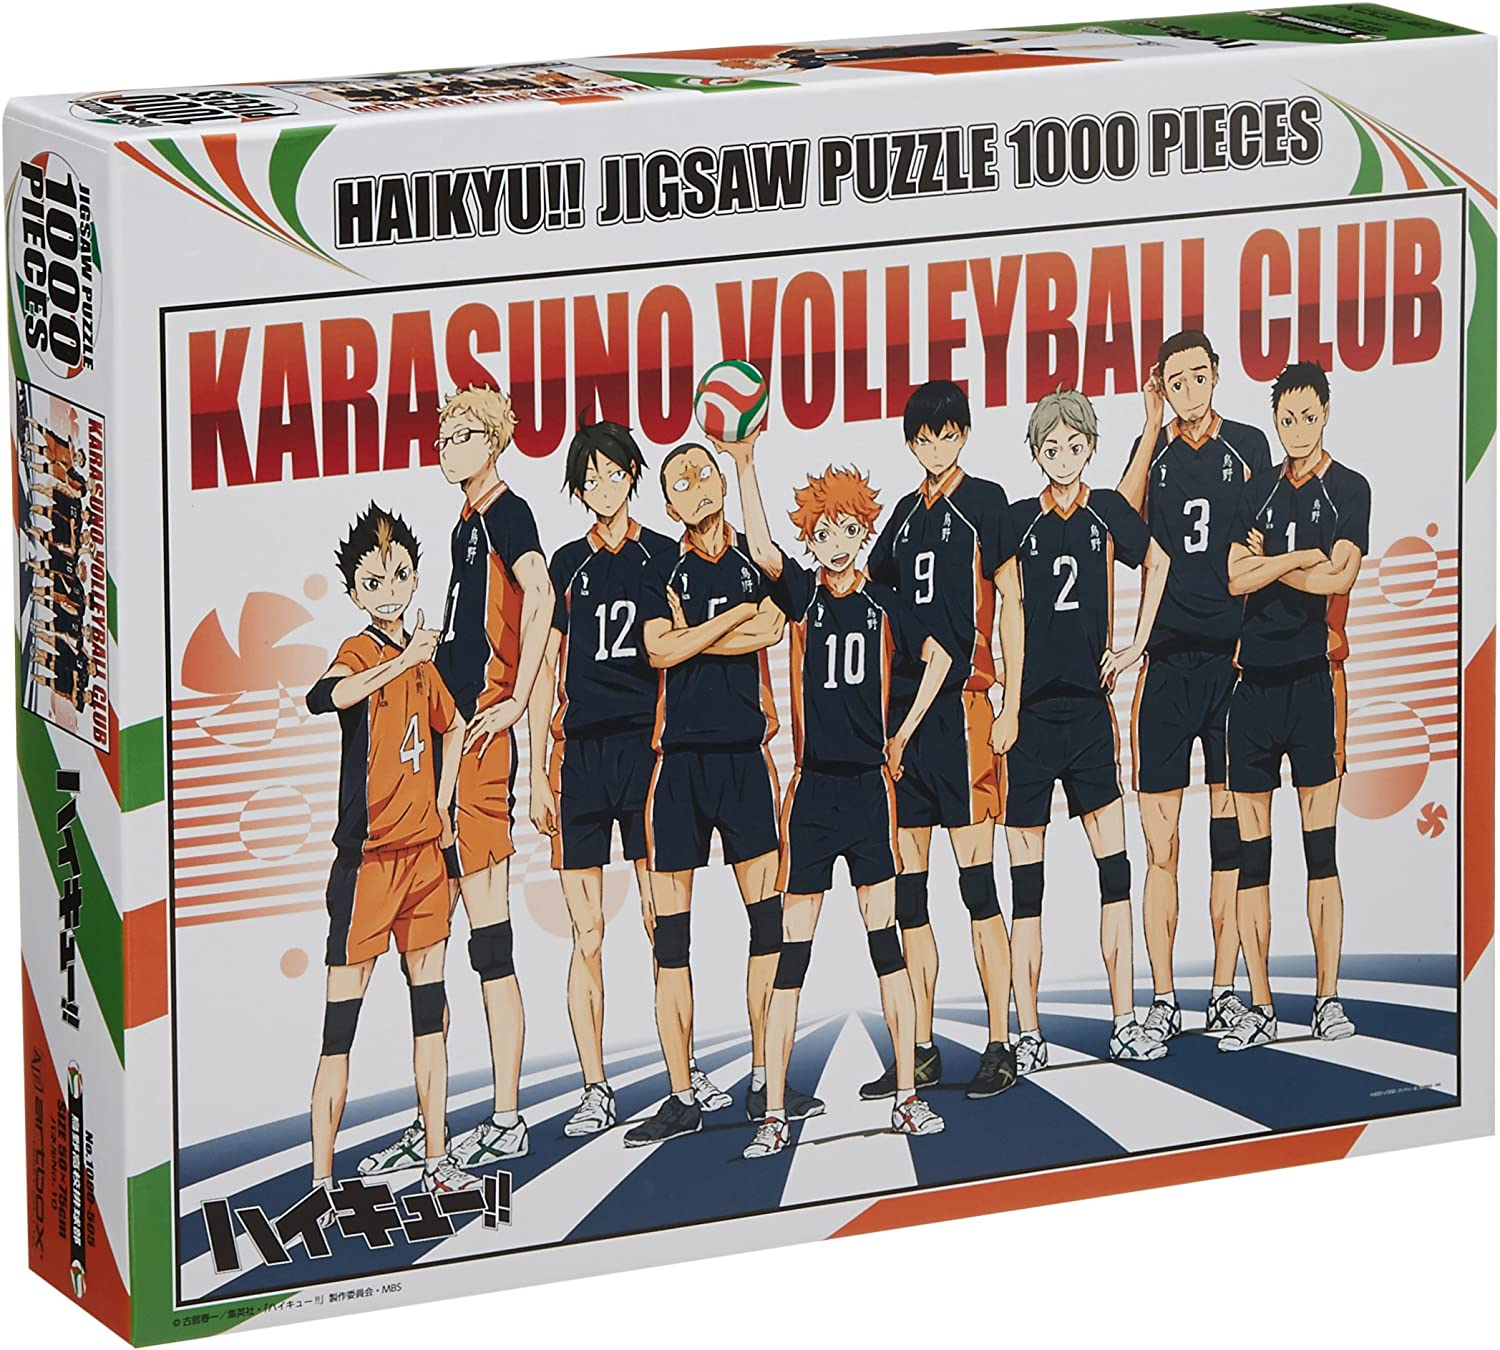 1000 piece jigsaw puzzle Haikyu!!Karasuno High School Volleyball Team(50x75cm)